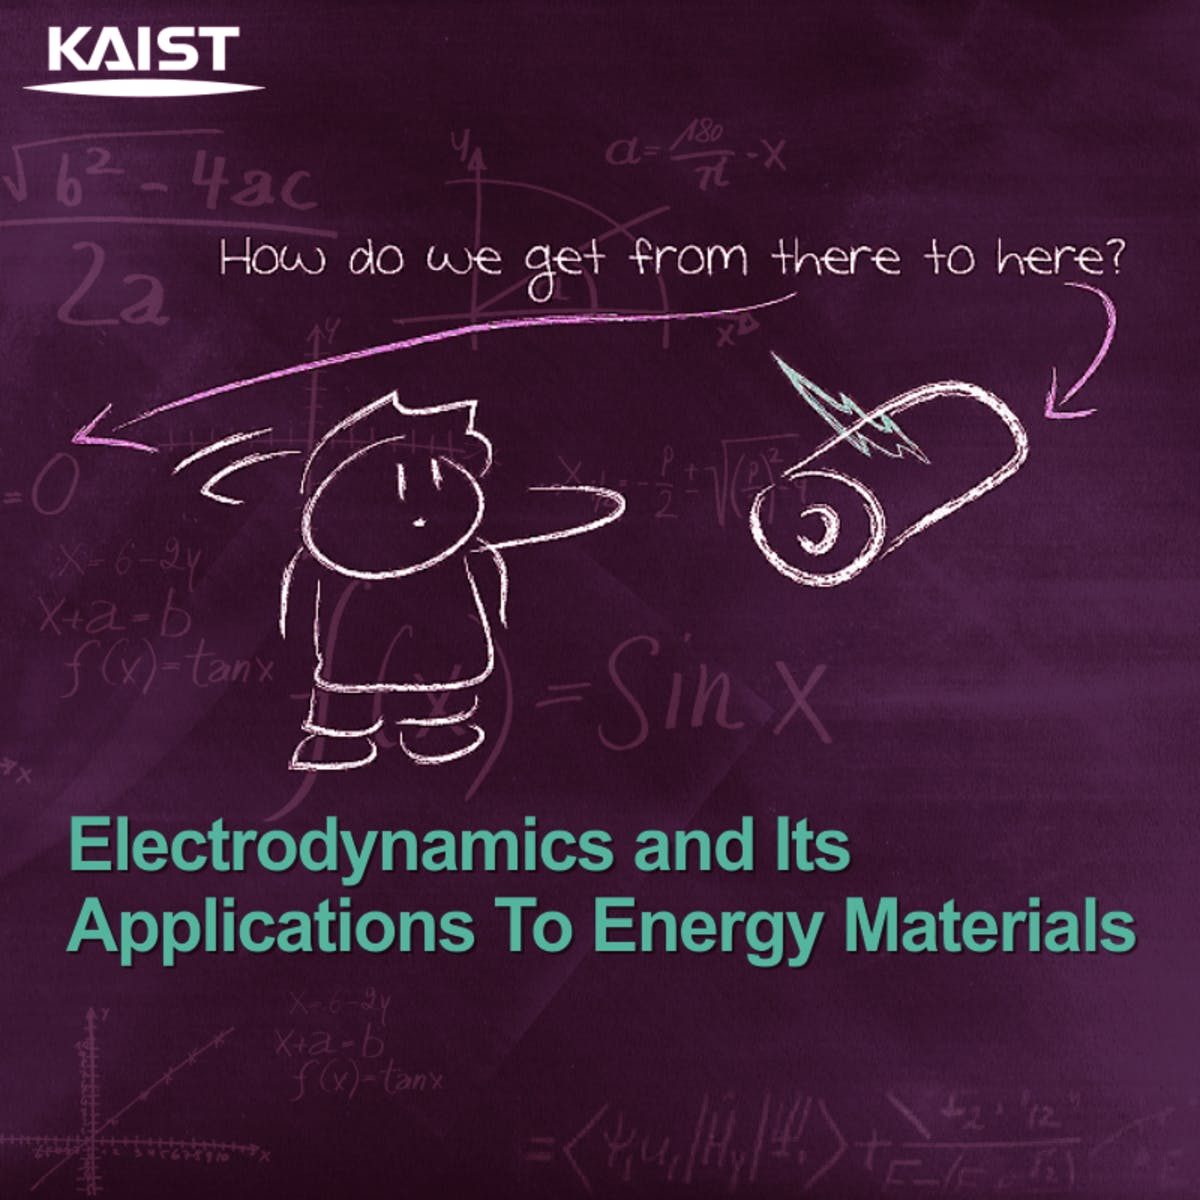 Electrodynamics: Electric and Magnetic Fields